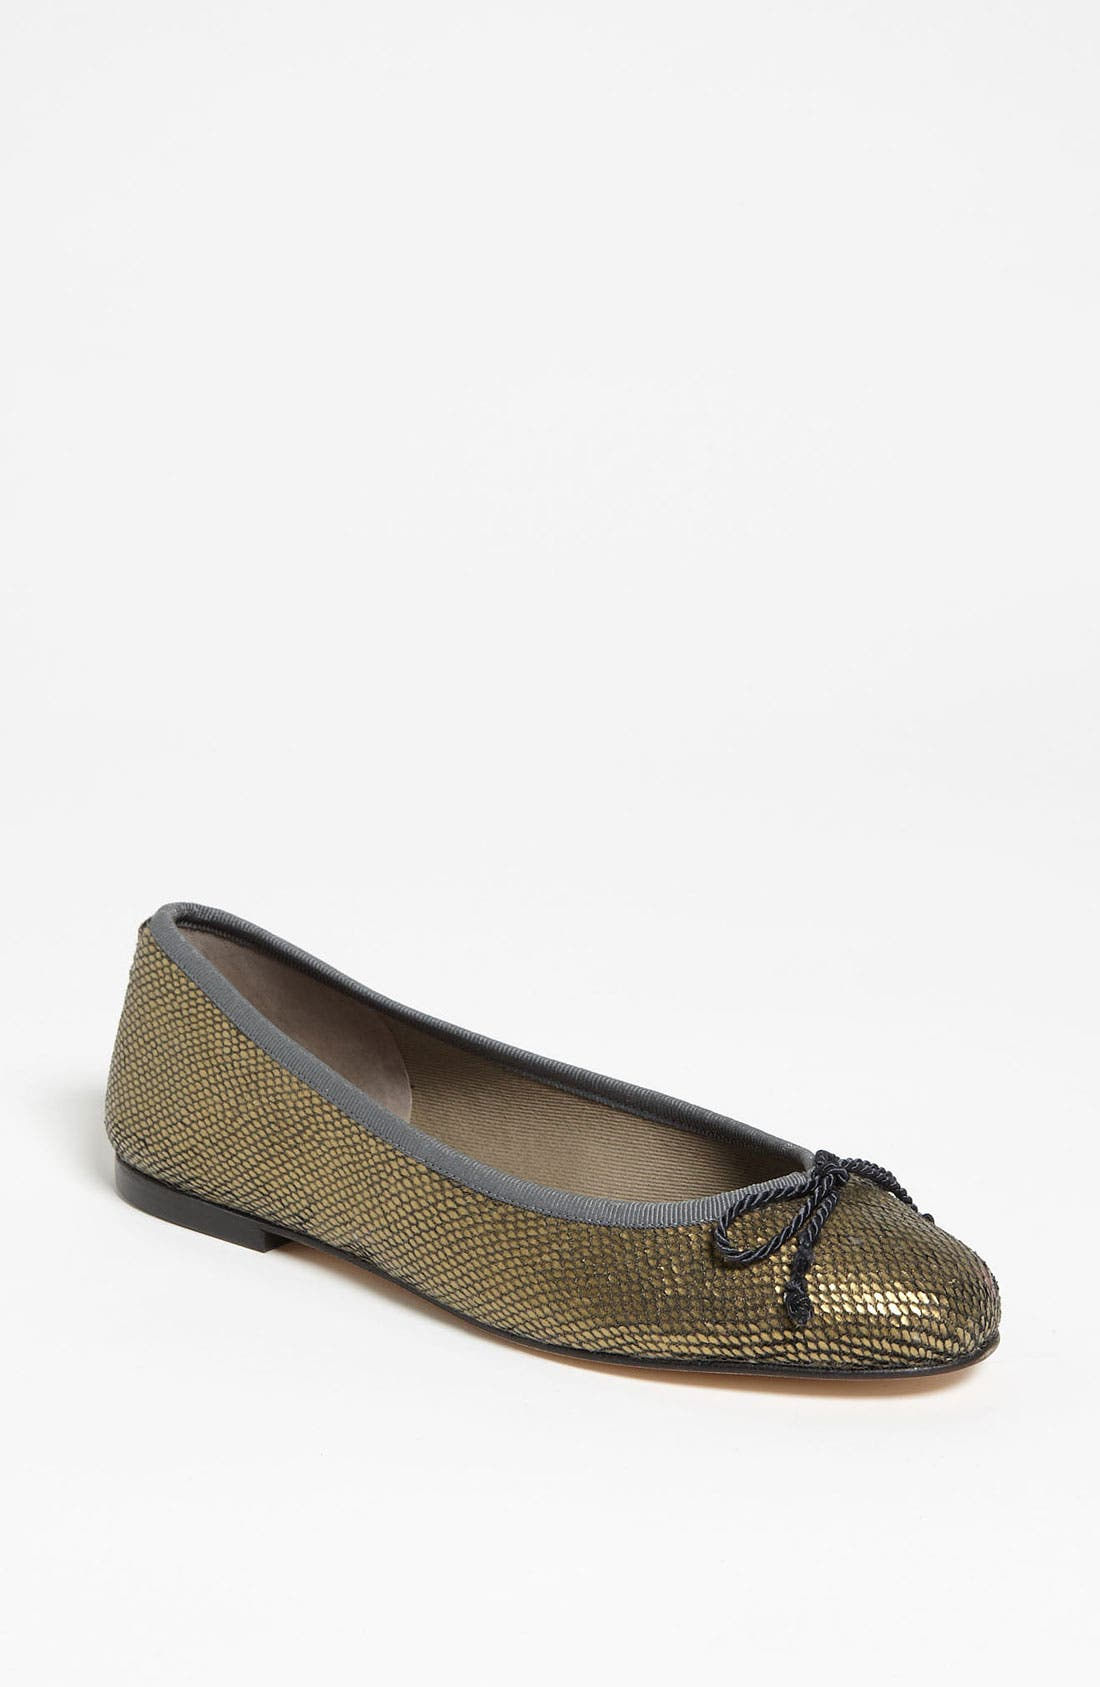 Main Image - French Sole 'Follow' Ballet Flat